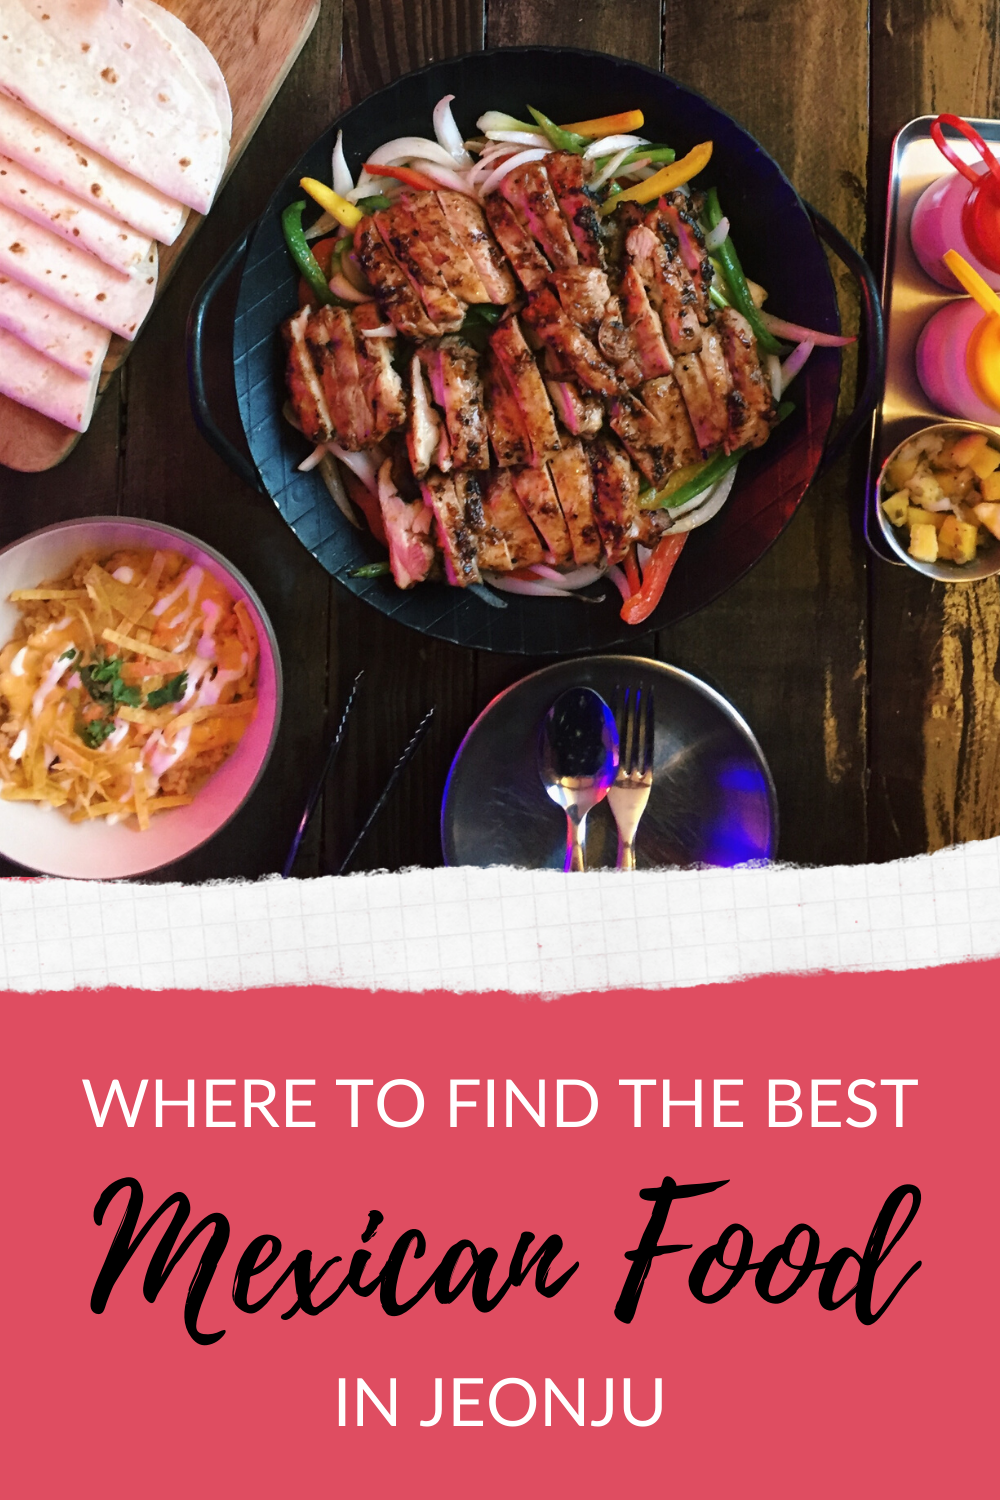 Where to find the best Mexican food in Jeonju